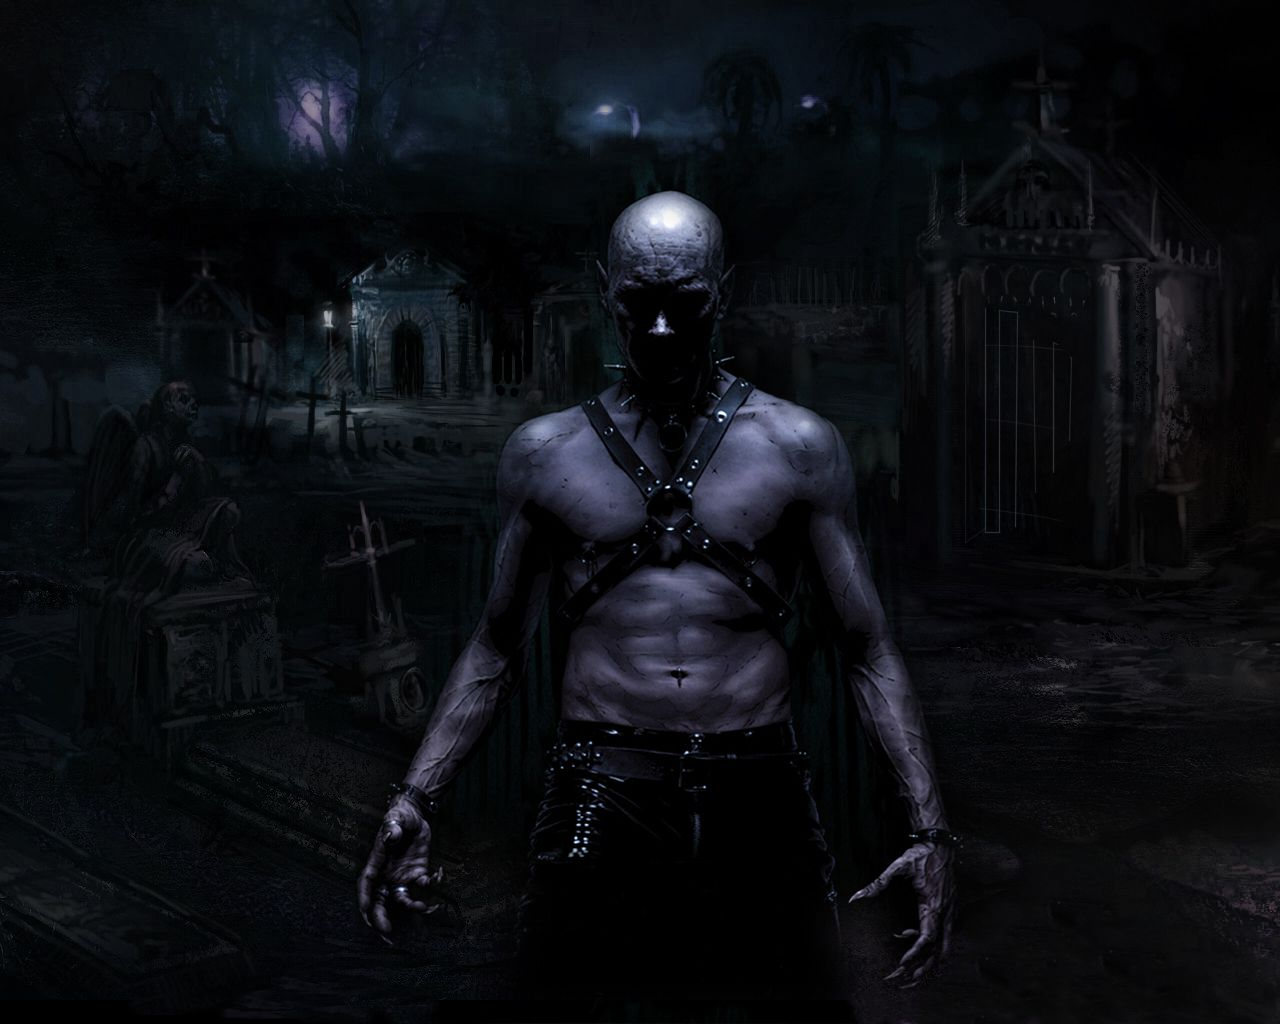 Horror Wallpapers X Dark Scary Wallpaper/Background 1280